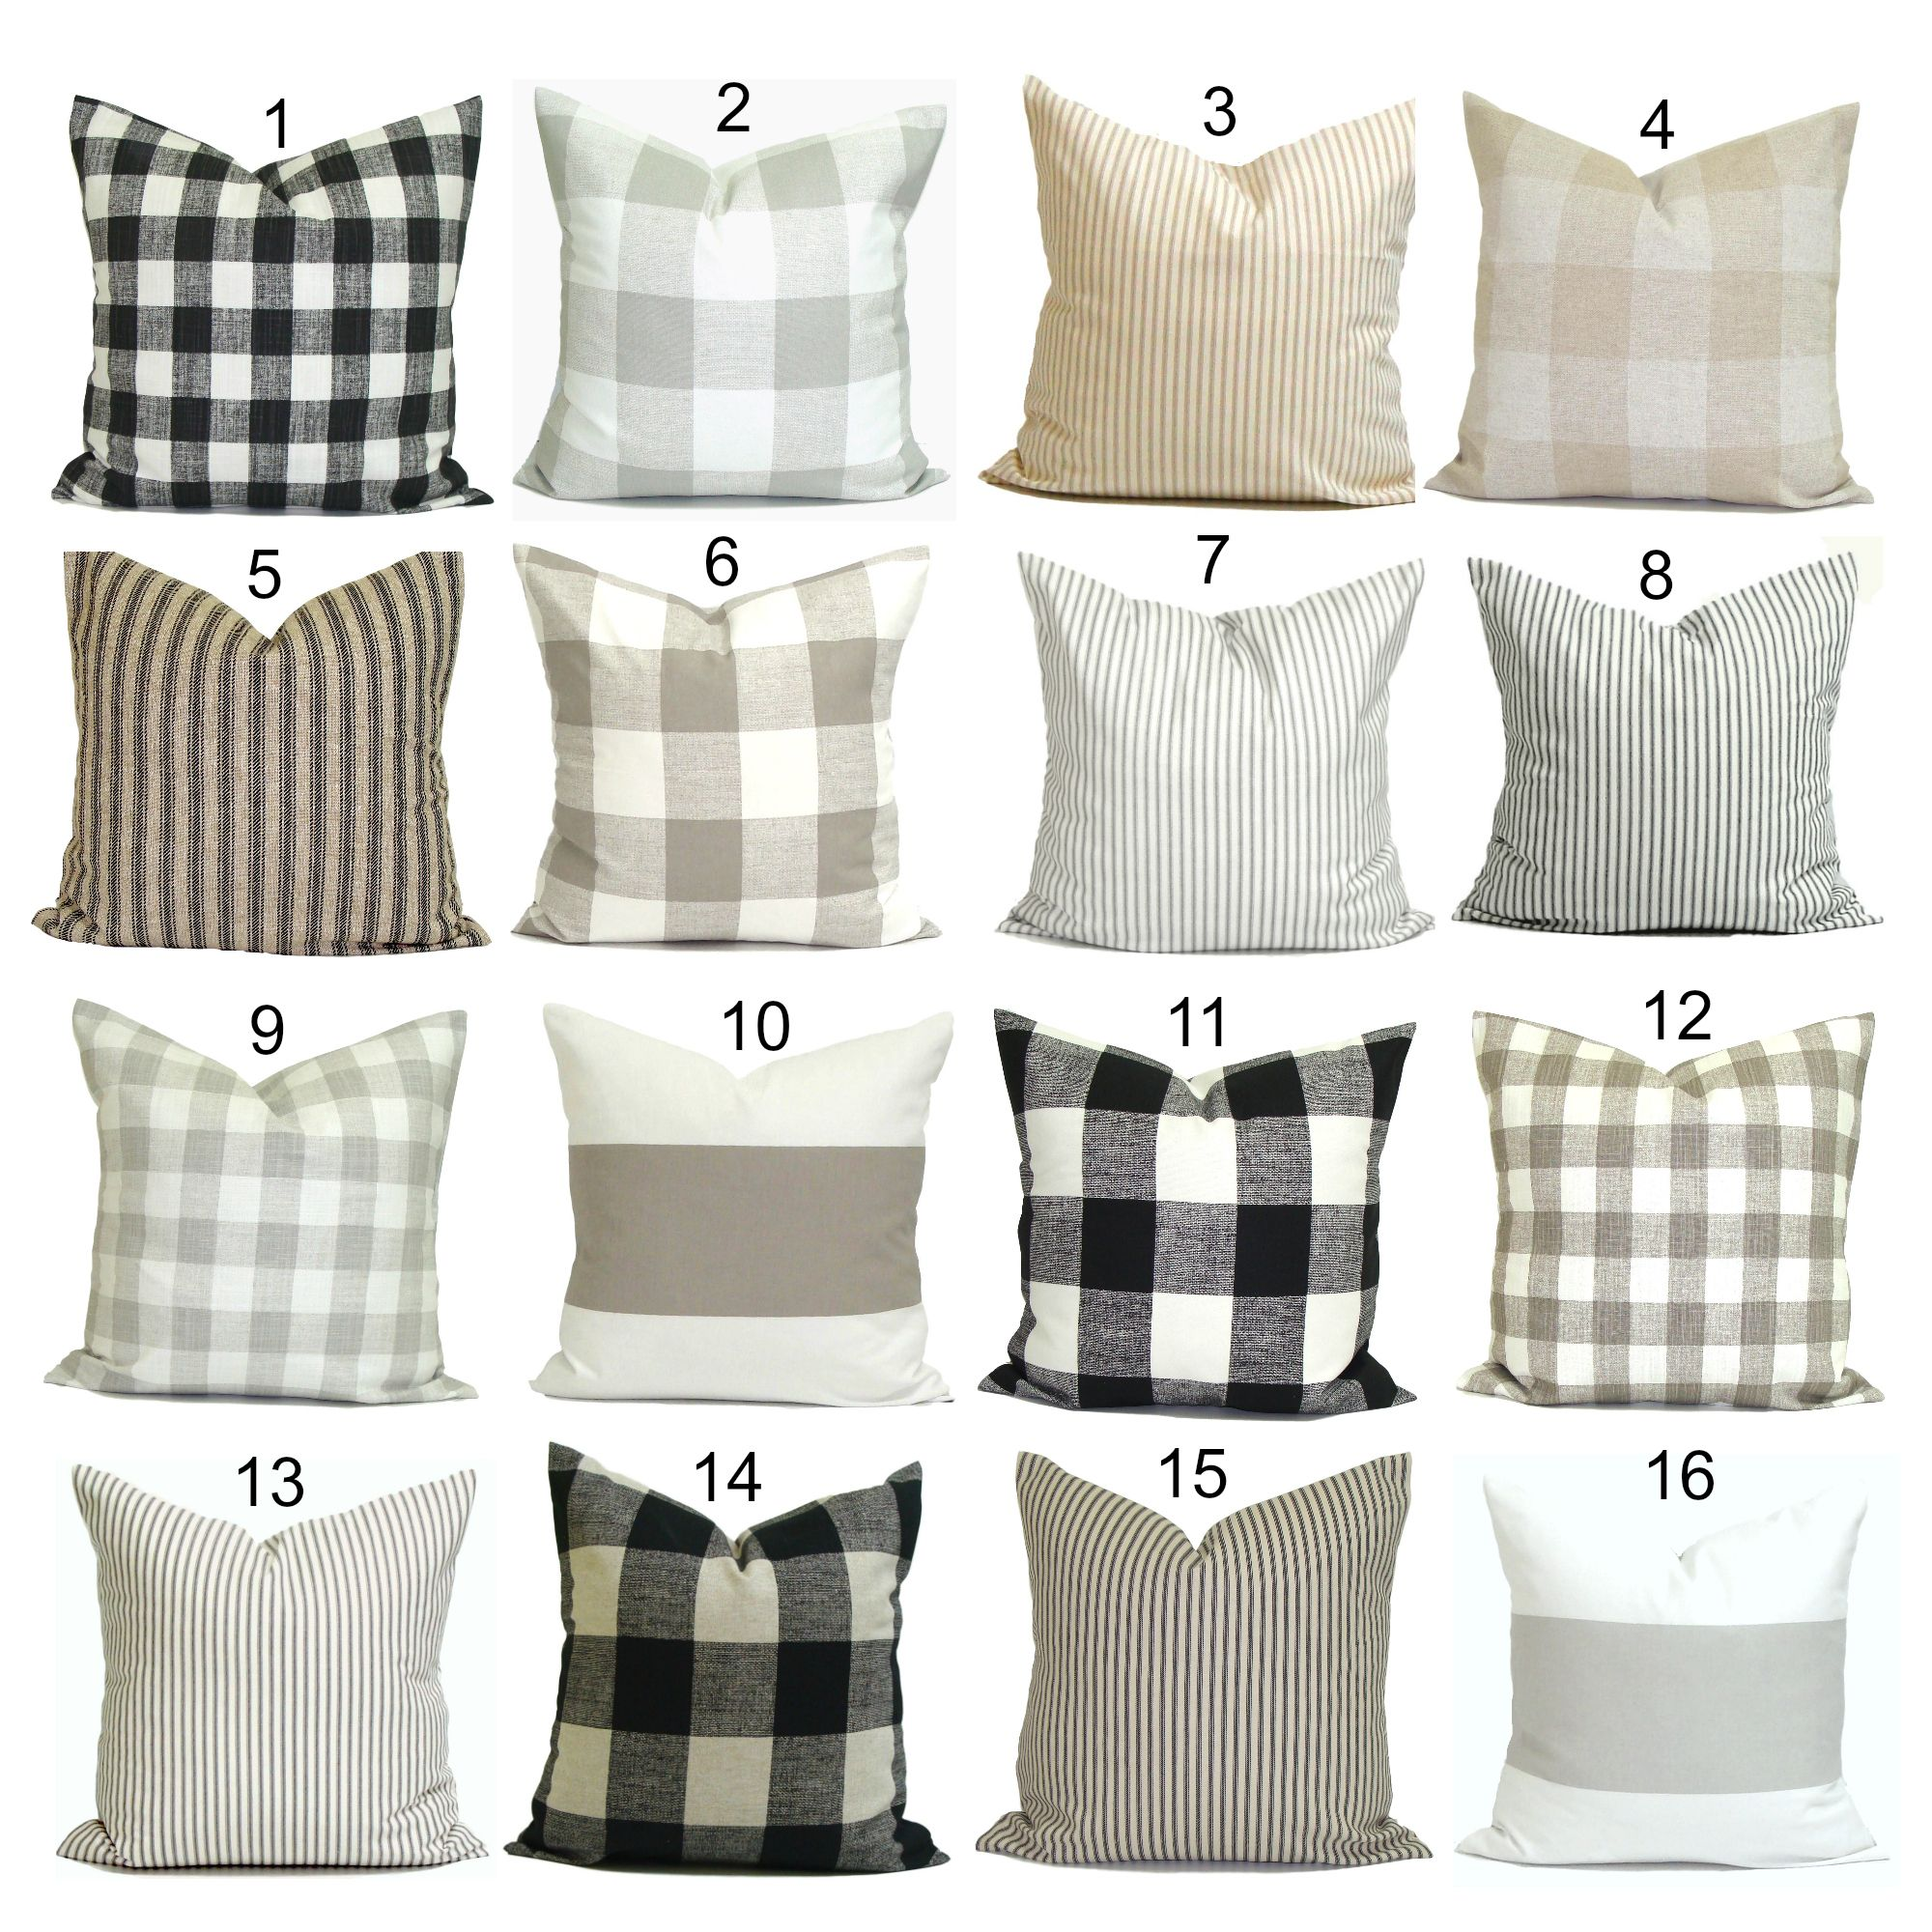 Farmhouse pillow covers by elemenopillows as seen on hgtv